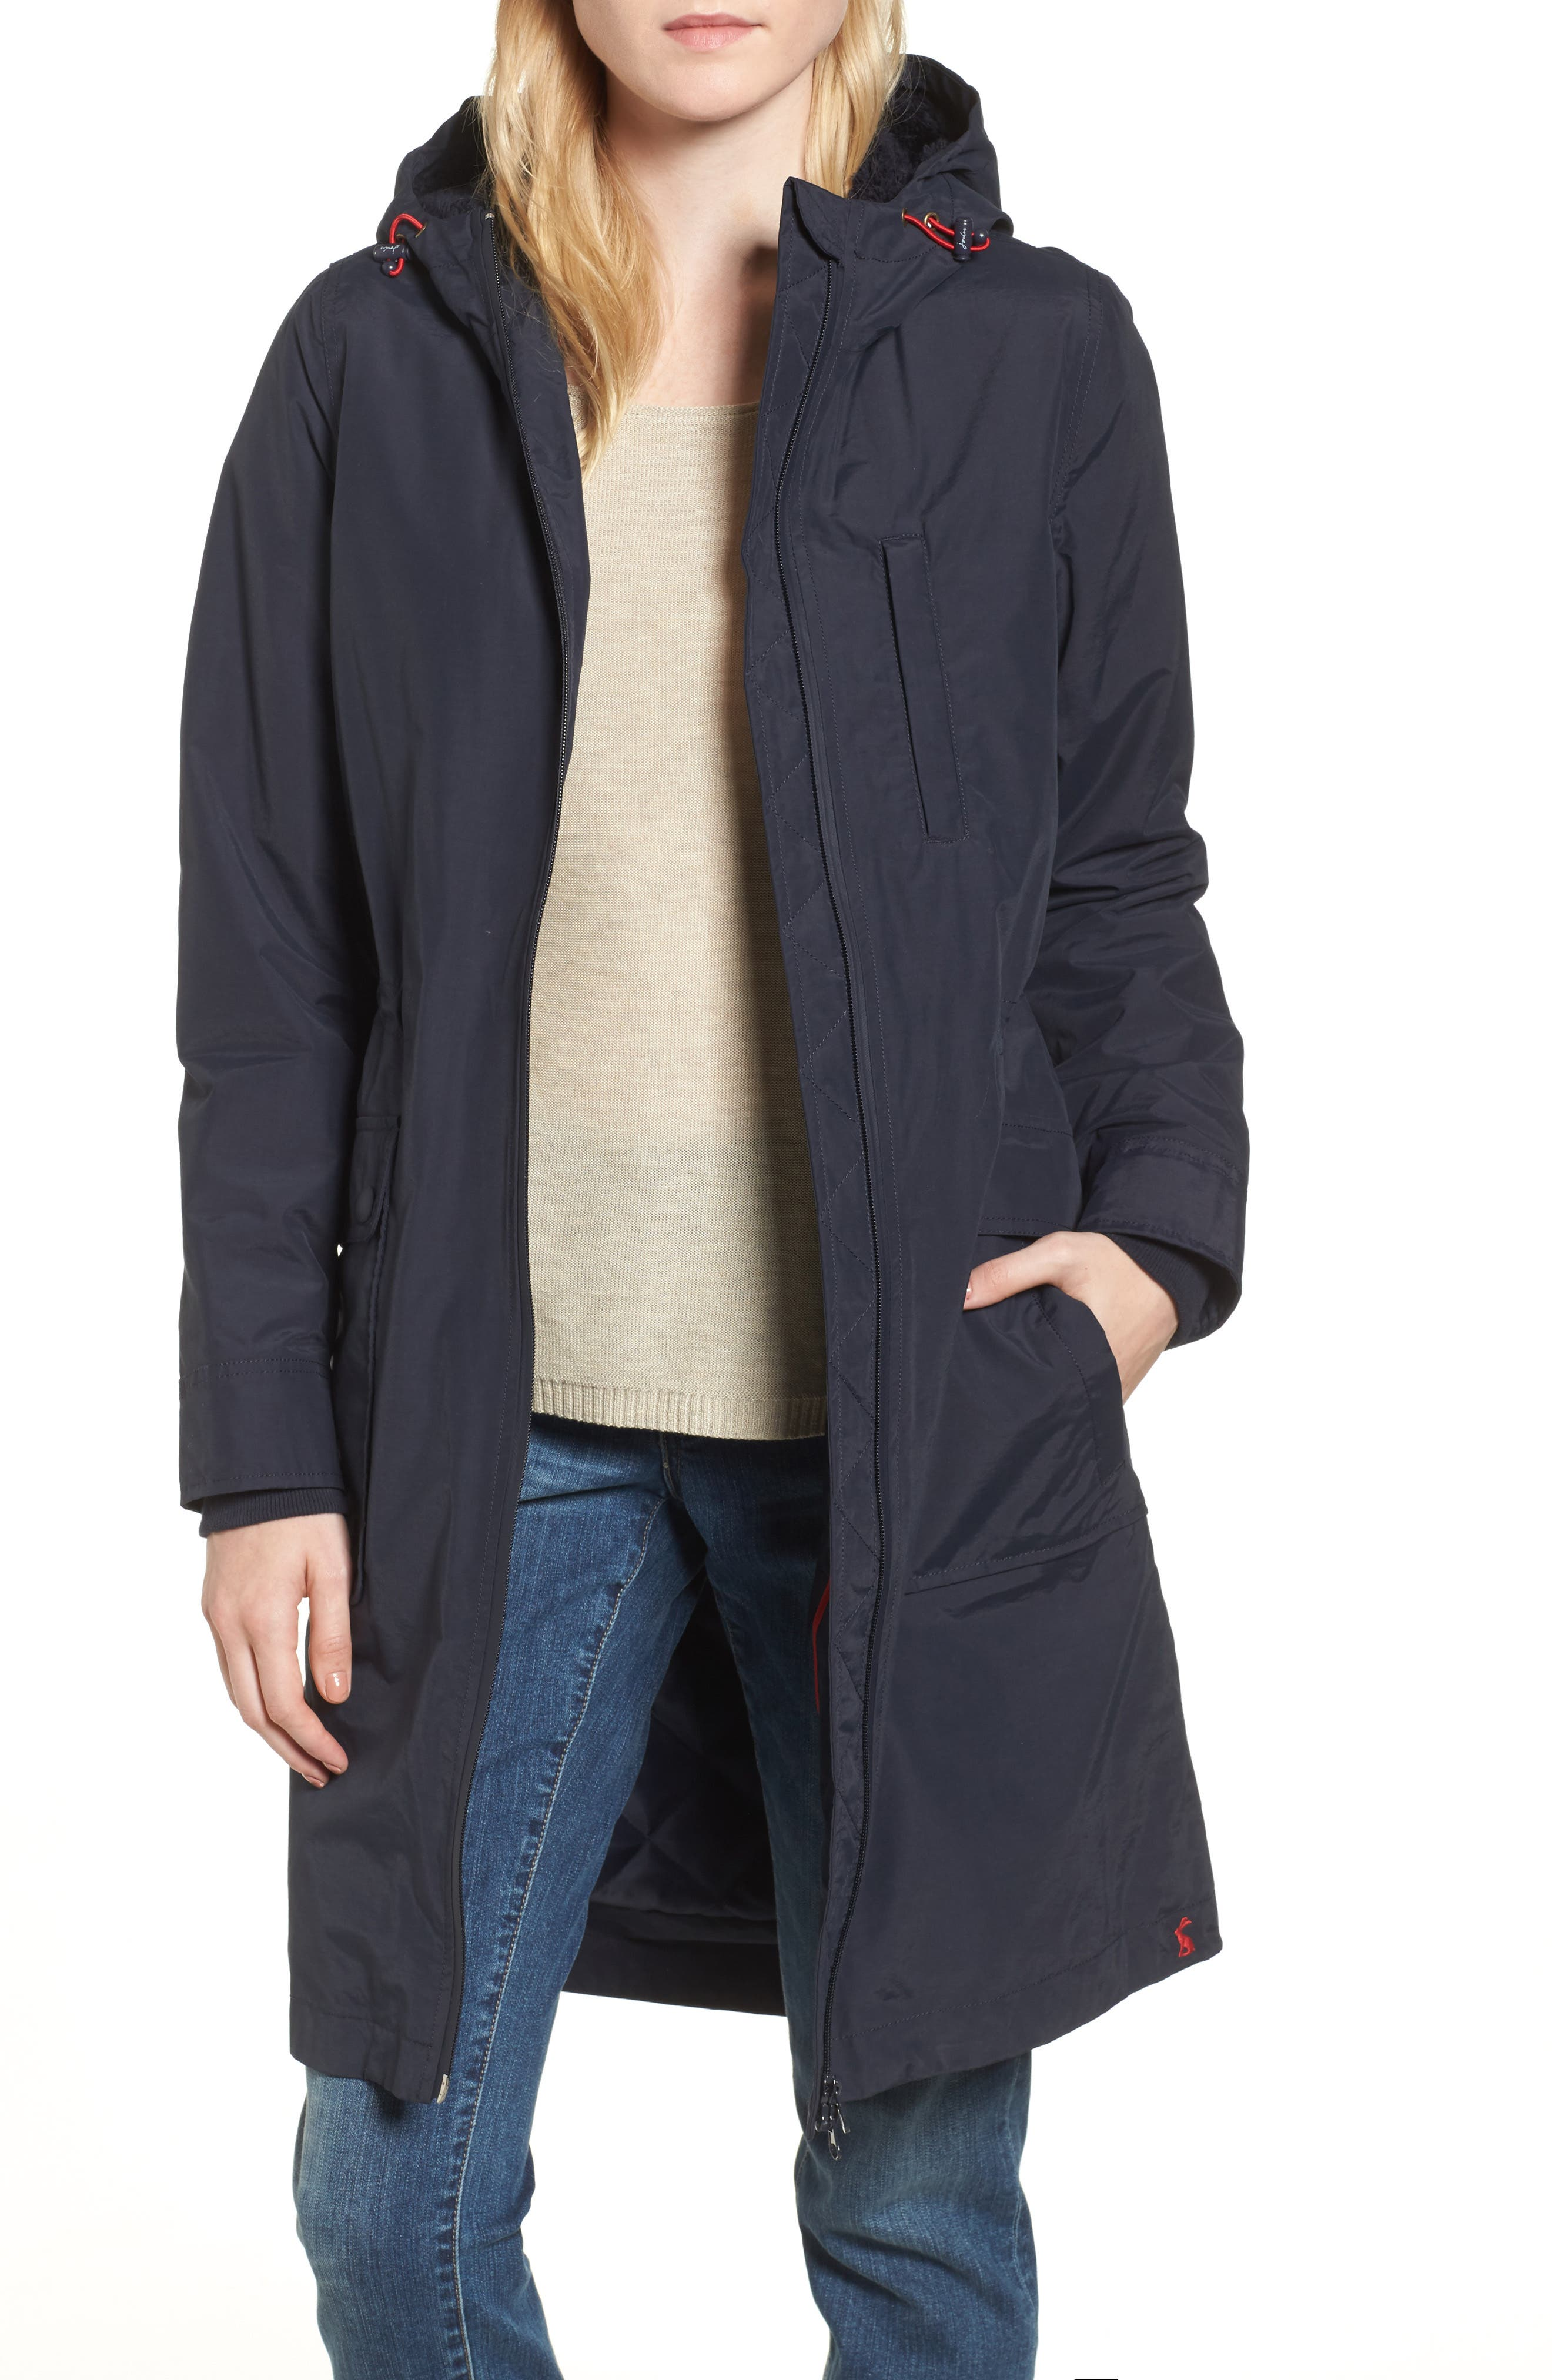 Joules green trench coat